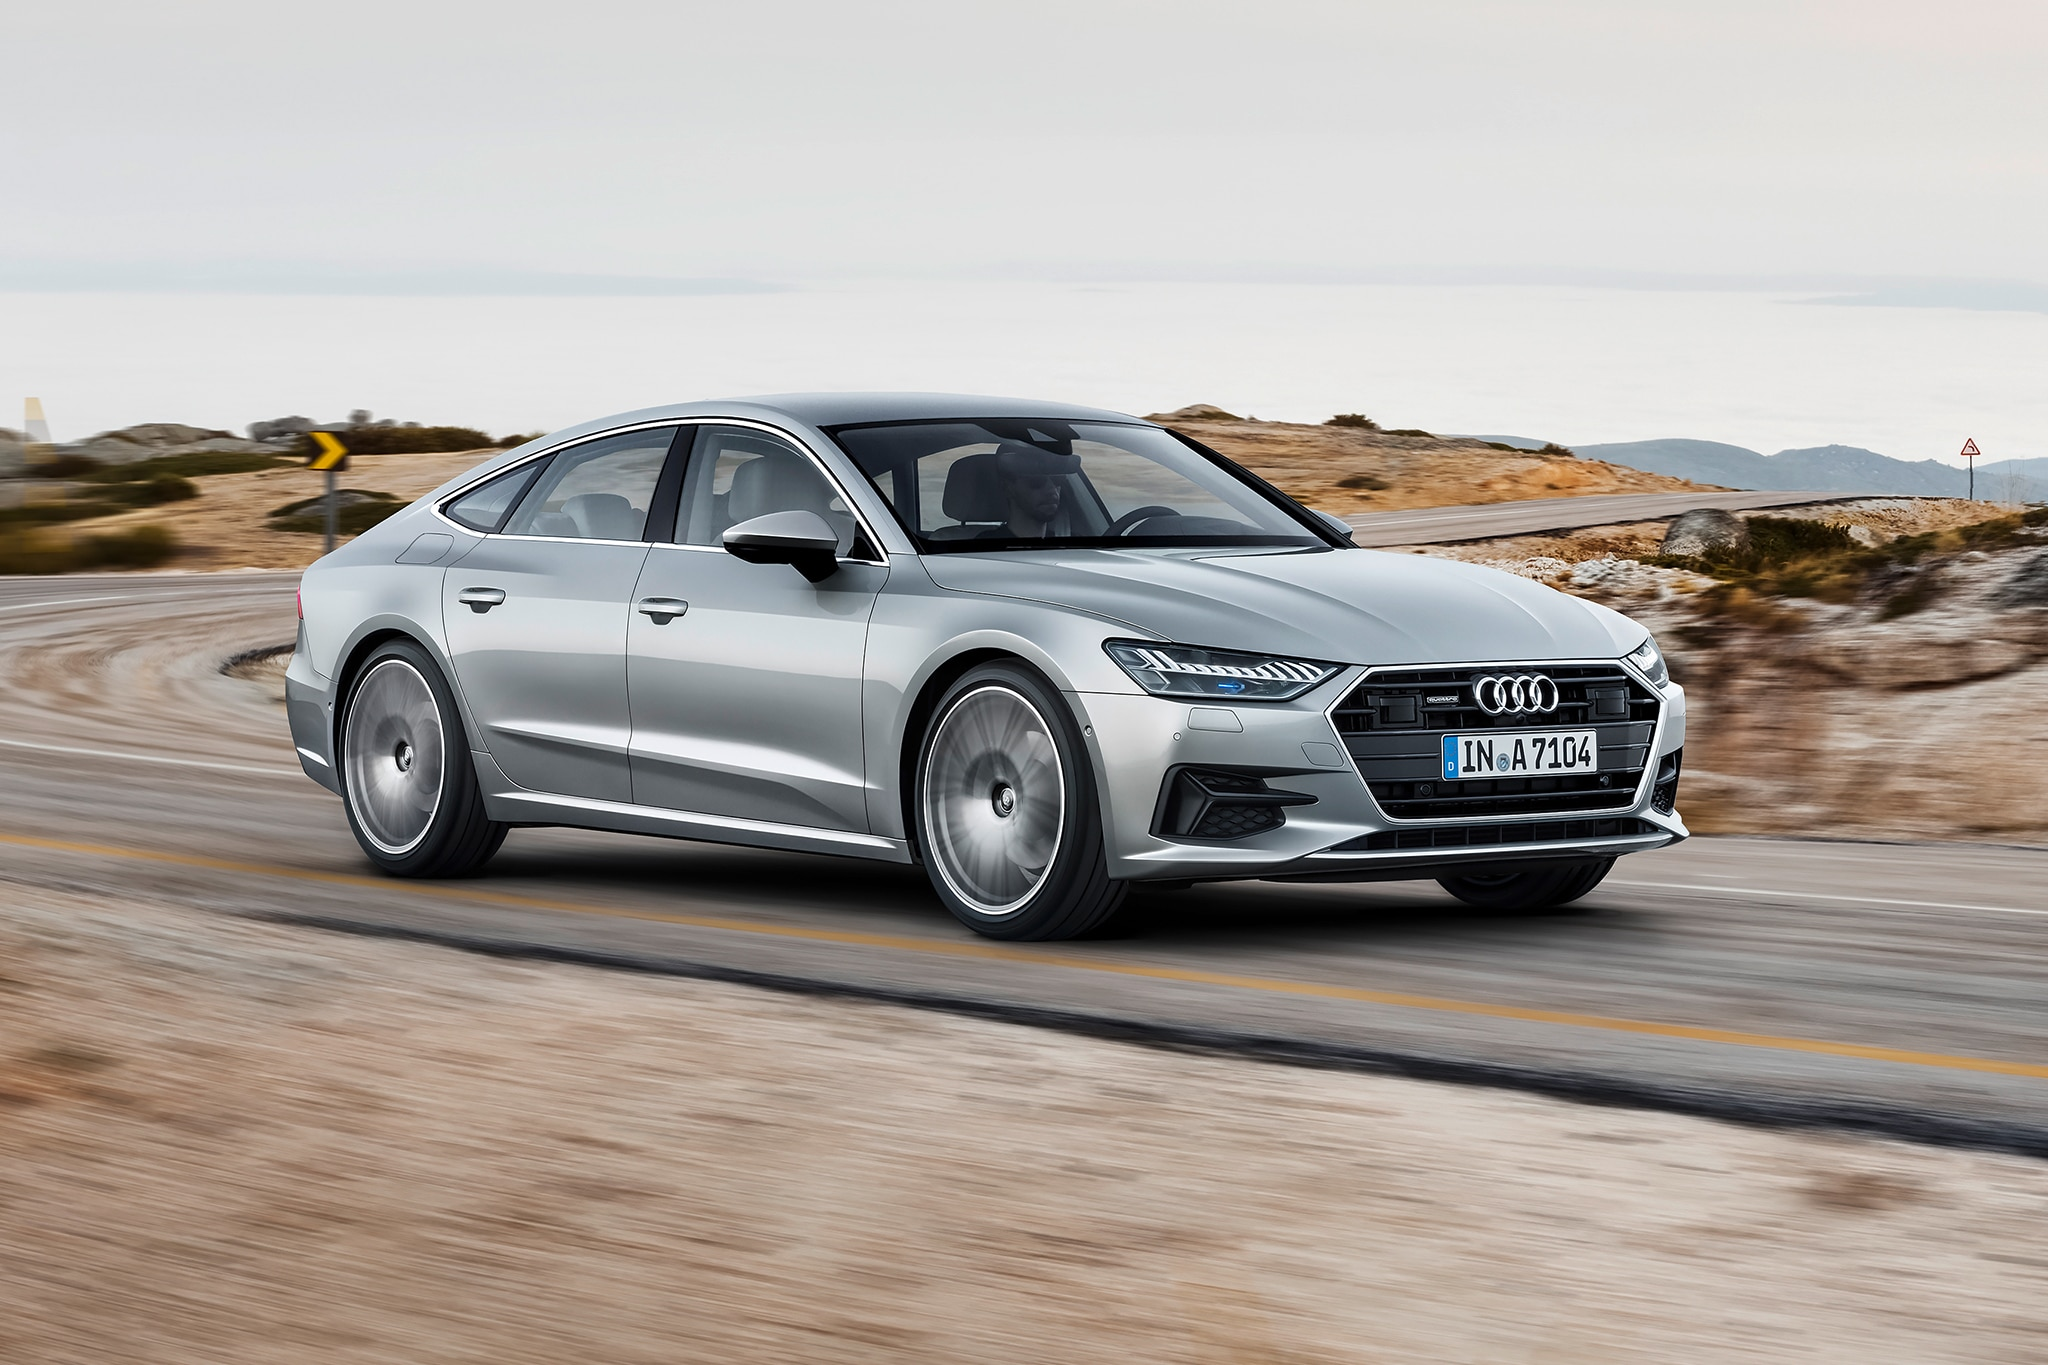 2019 Audi A7 Looks Slick And Turns Up The Tech Automobile Magazine